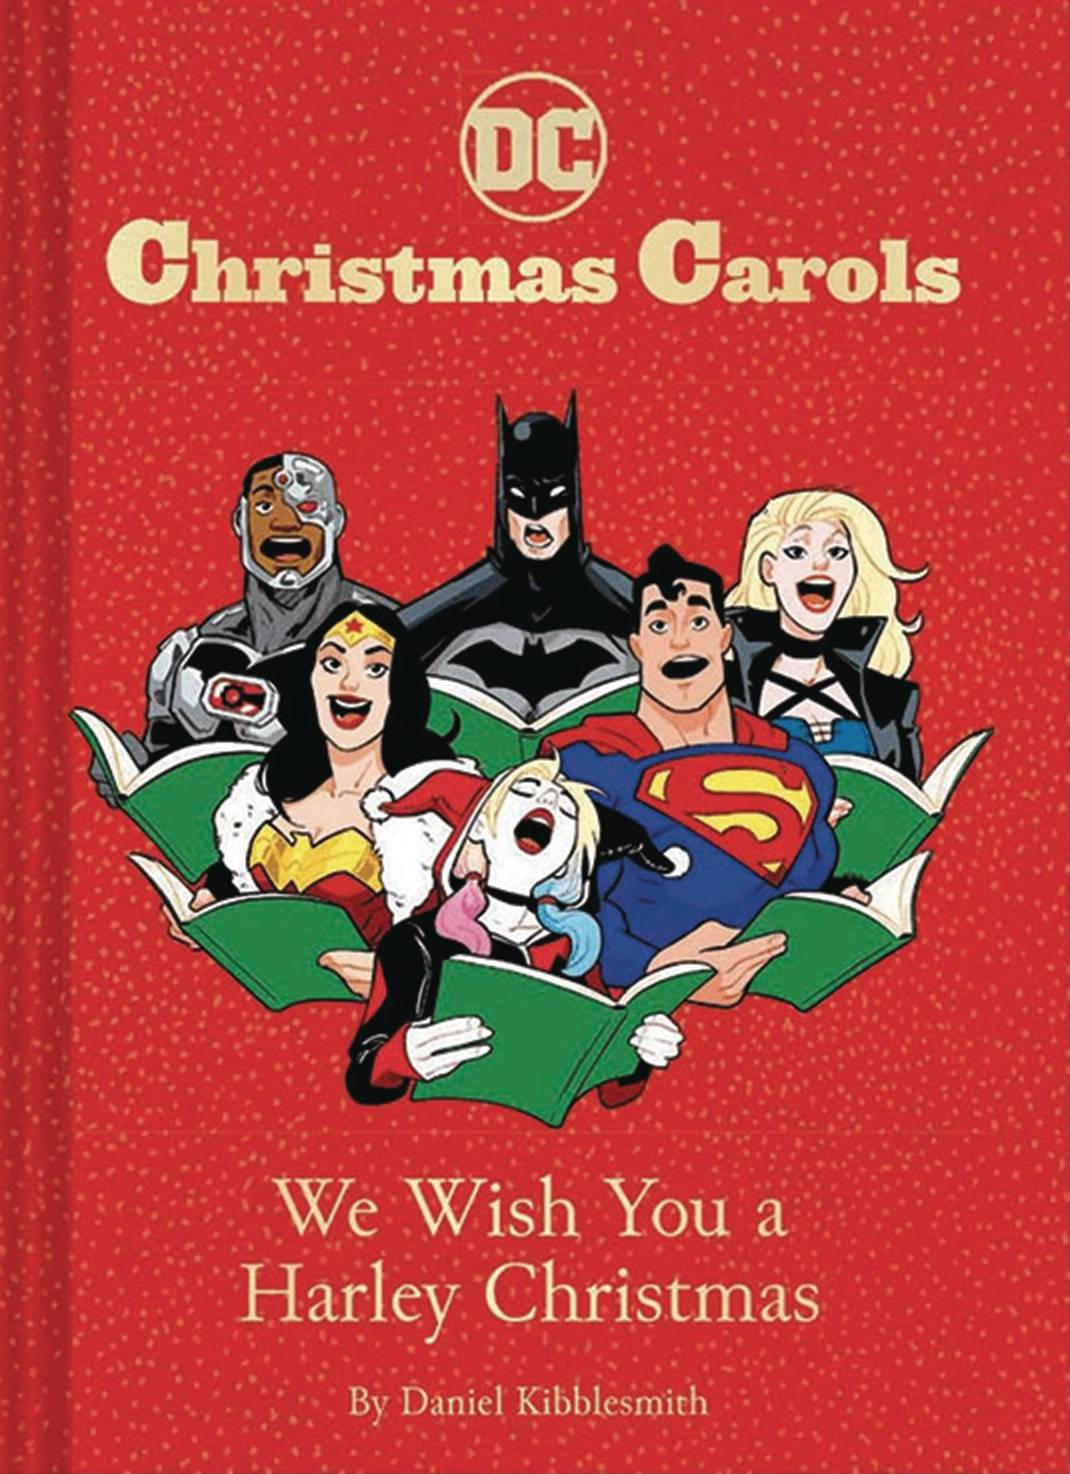 DC CHRISTMAS CAROLS WE WISH YOU A HARLEY CHRISTMAS HC